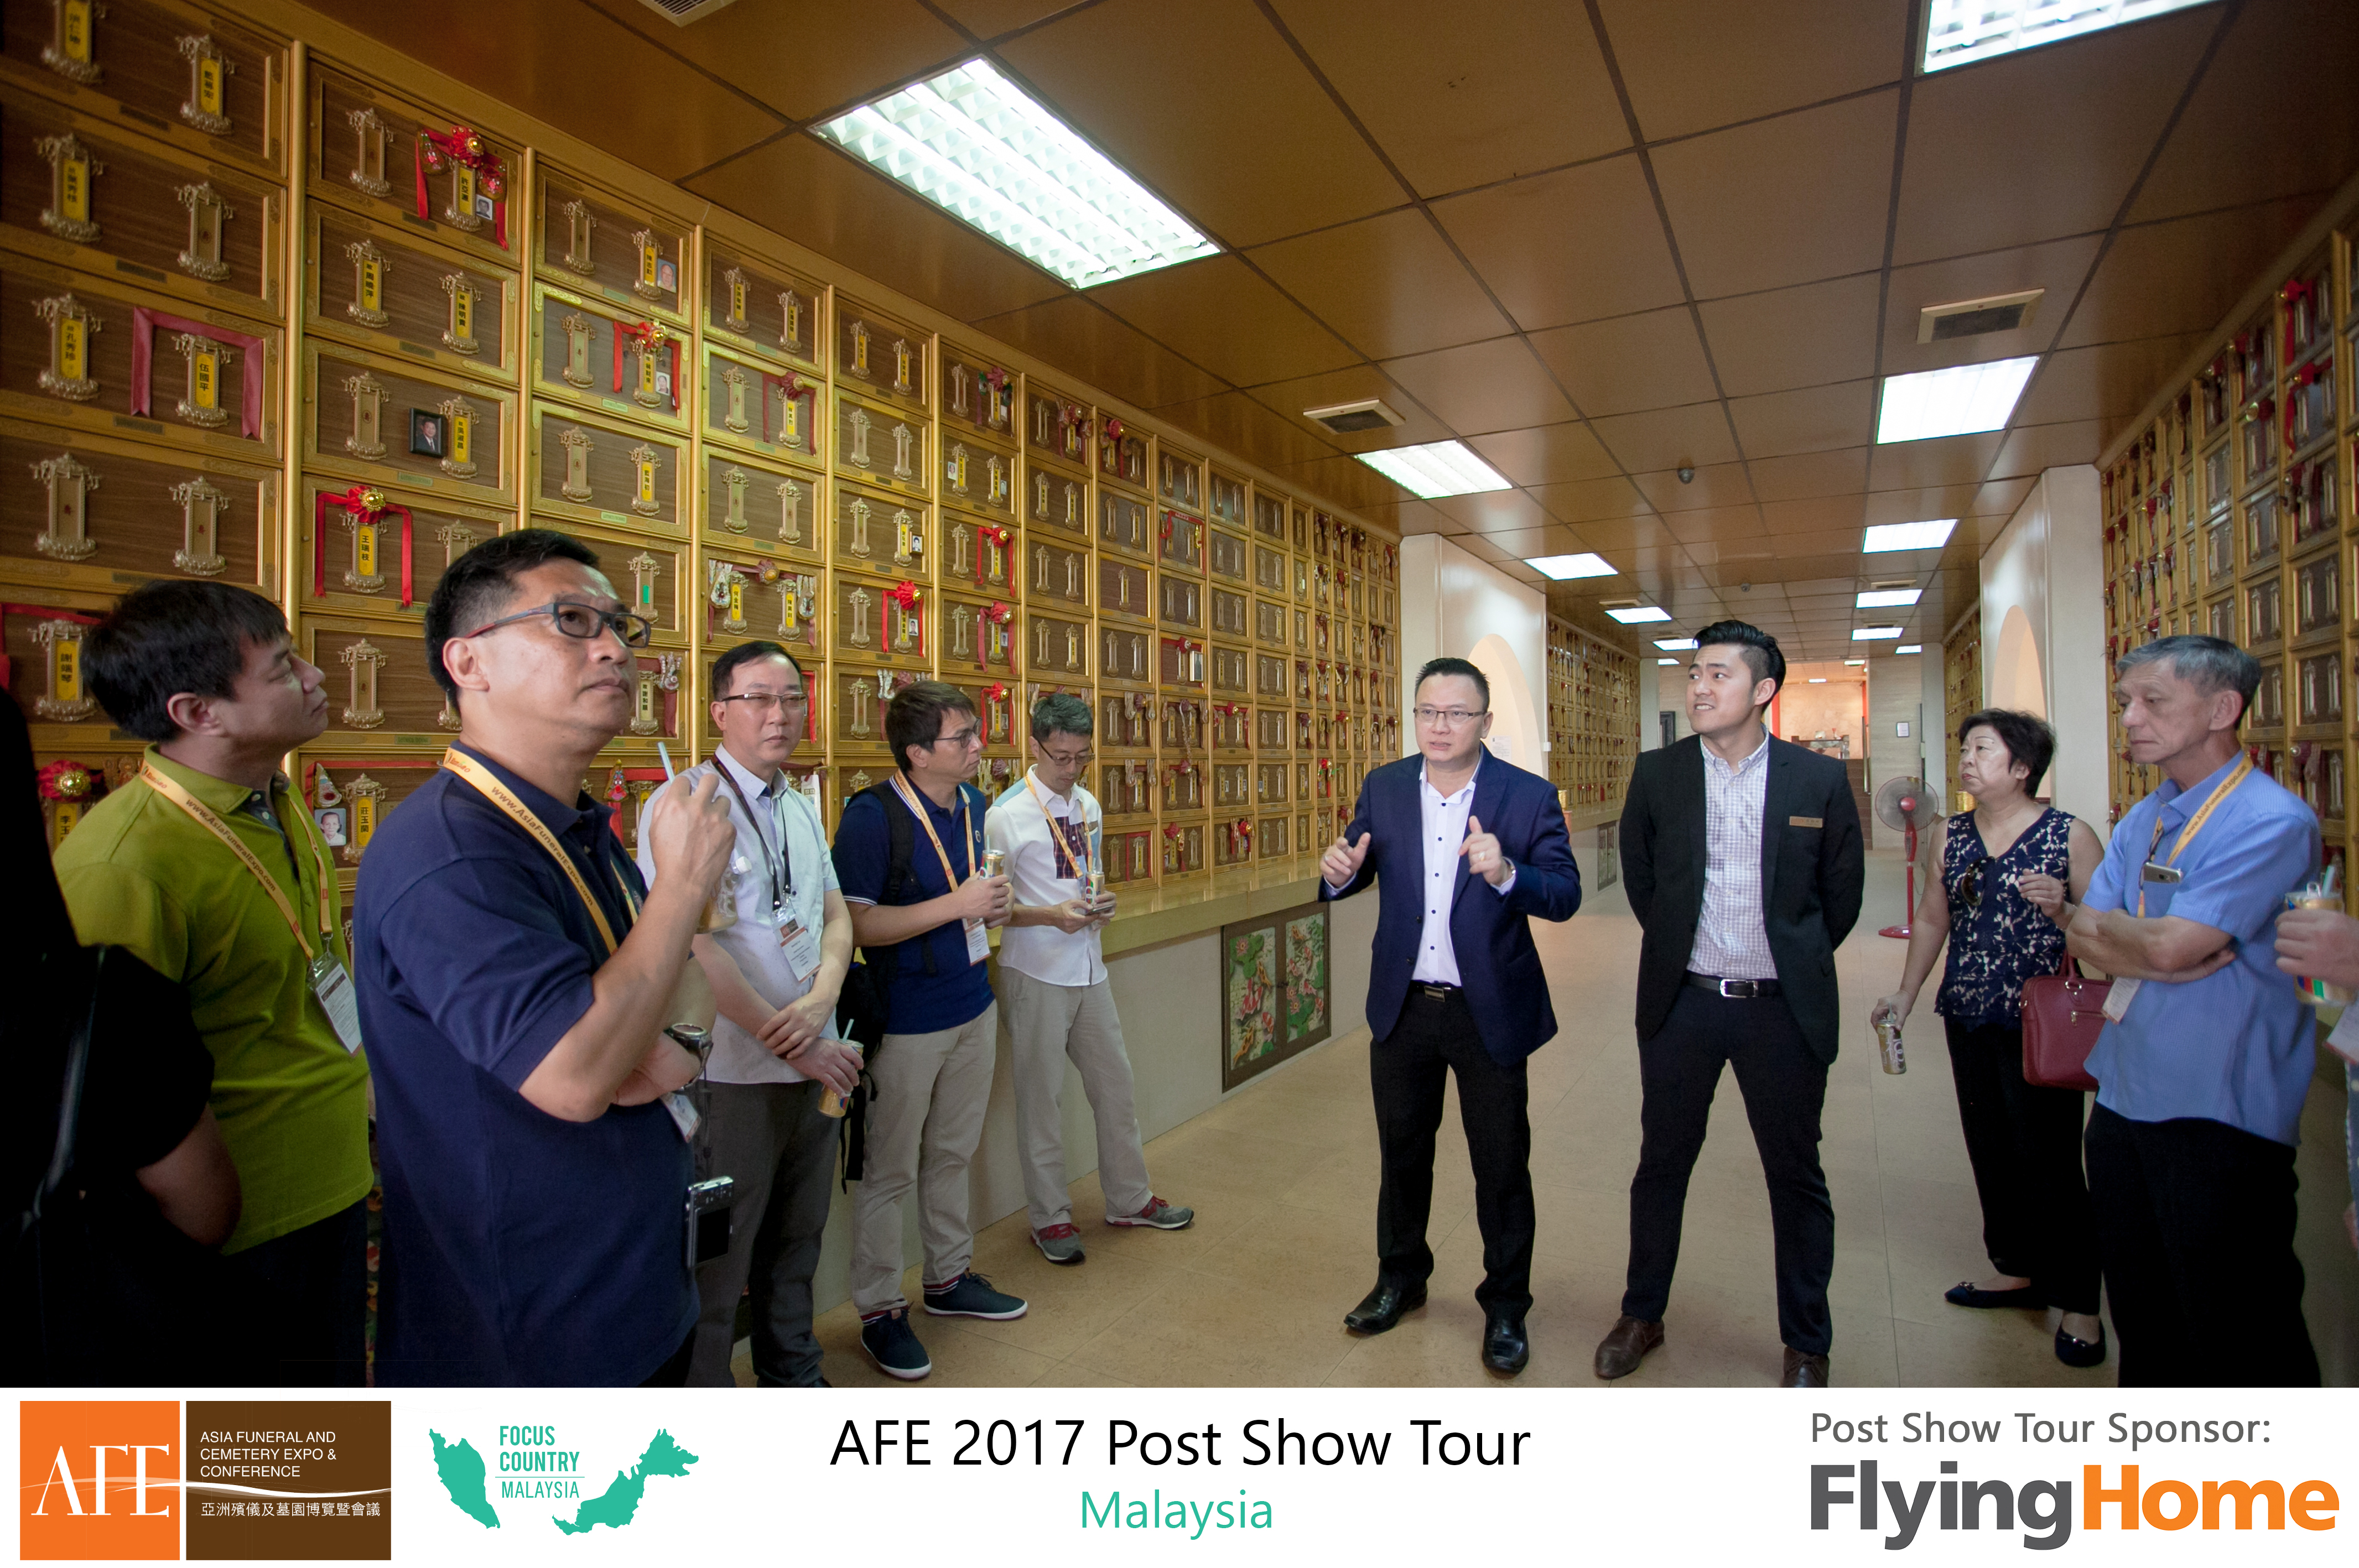 AFE Post Show Tour 2017 Day 4 - 39